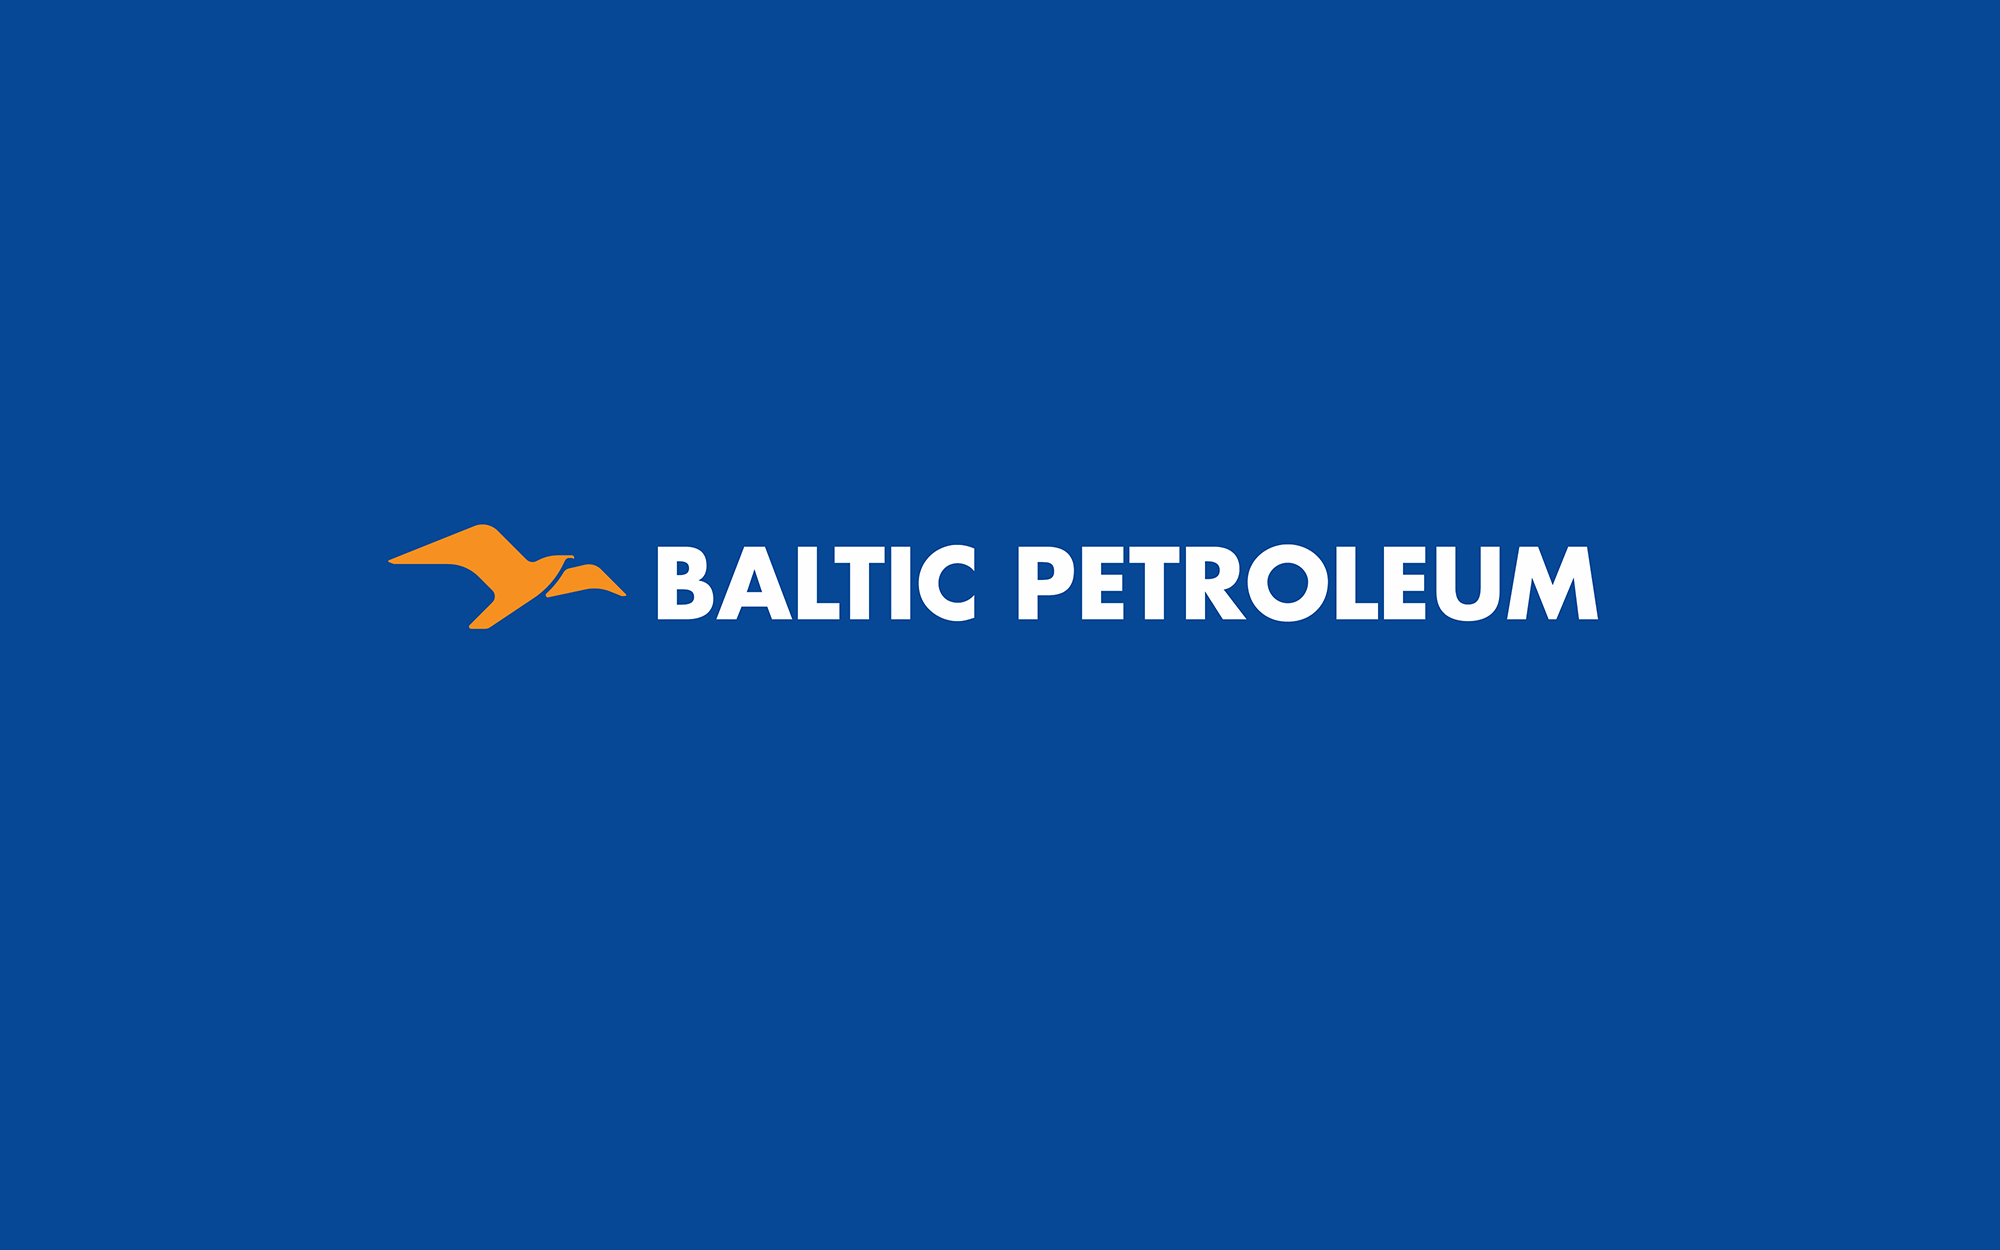 Baltic Petroleum logo